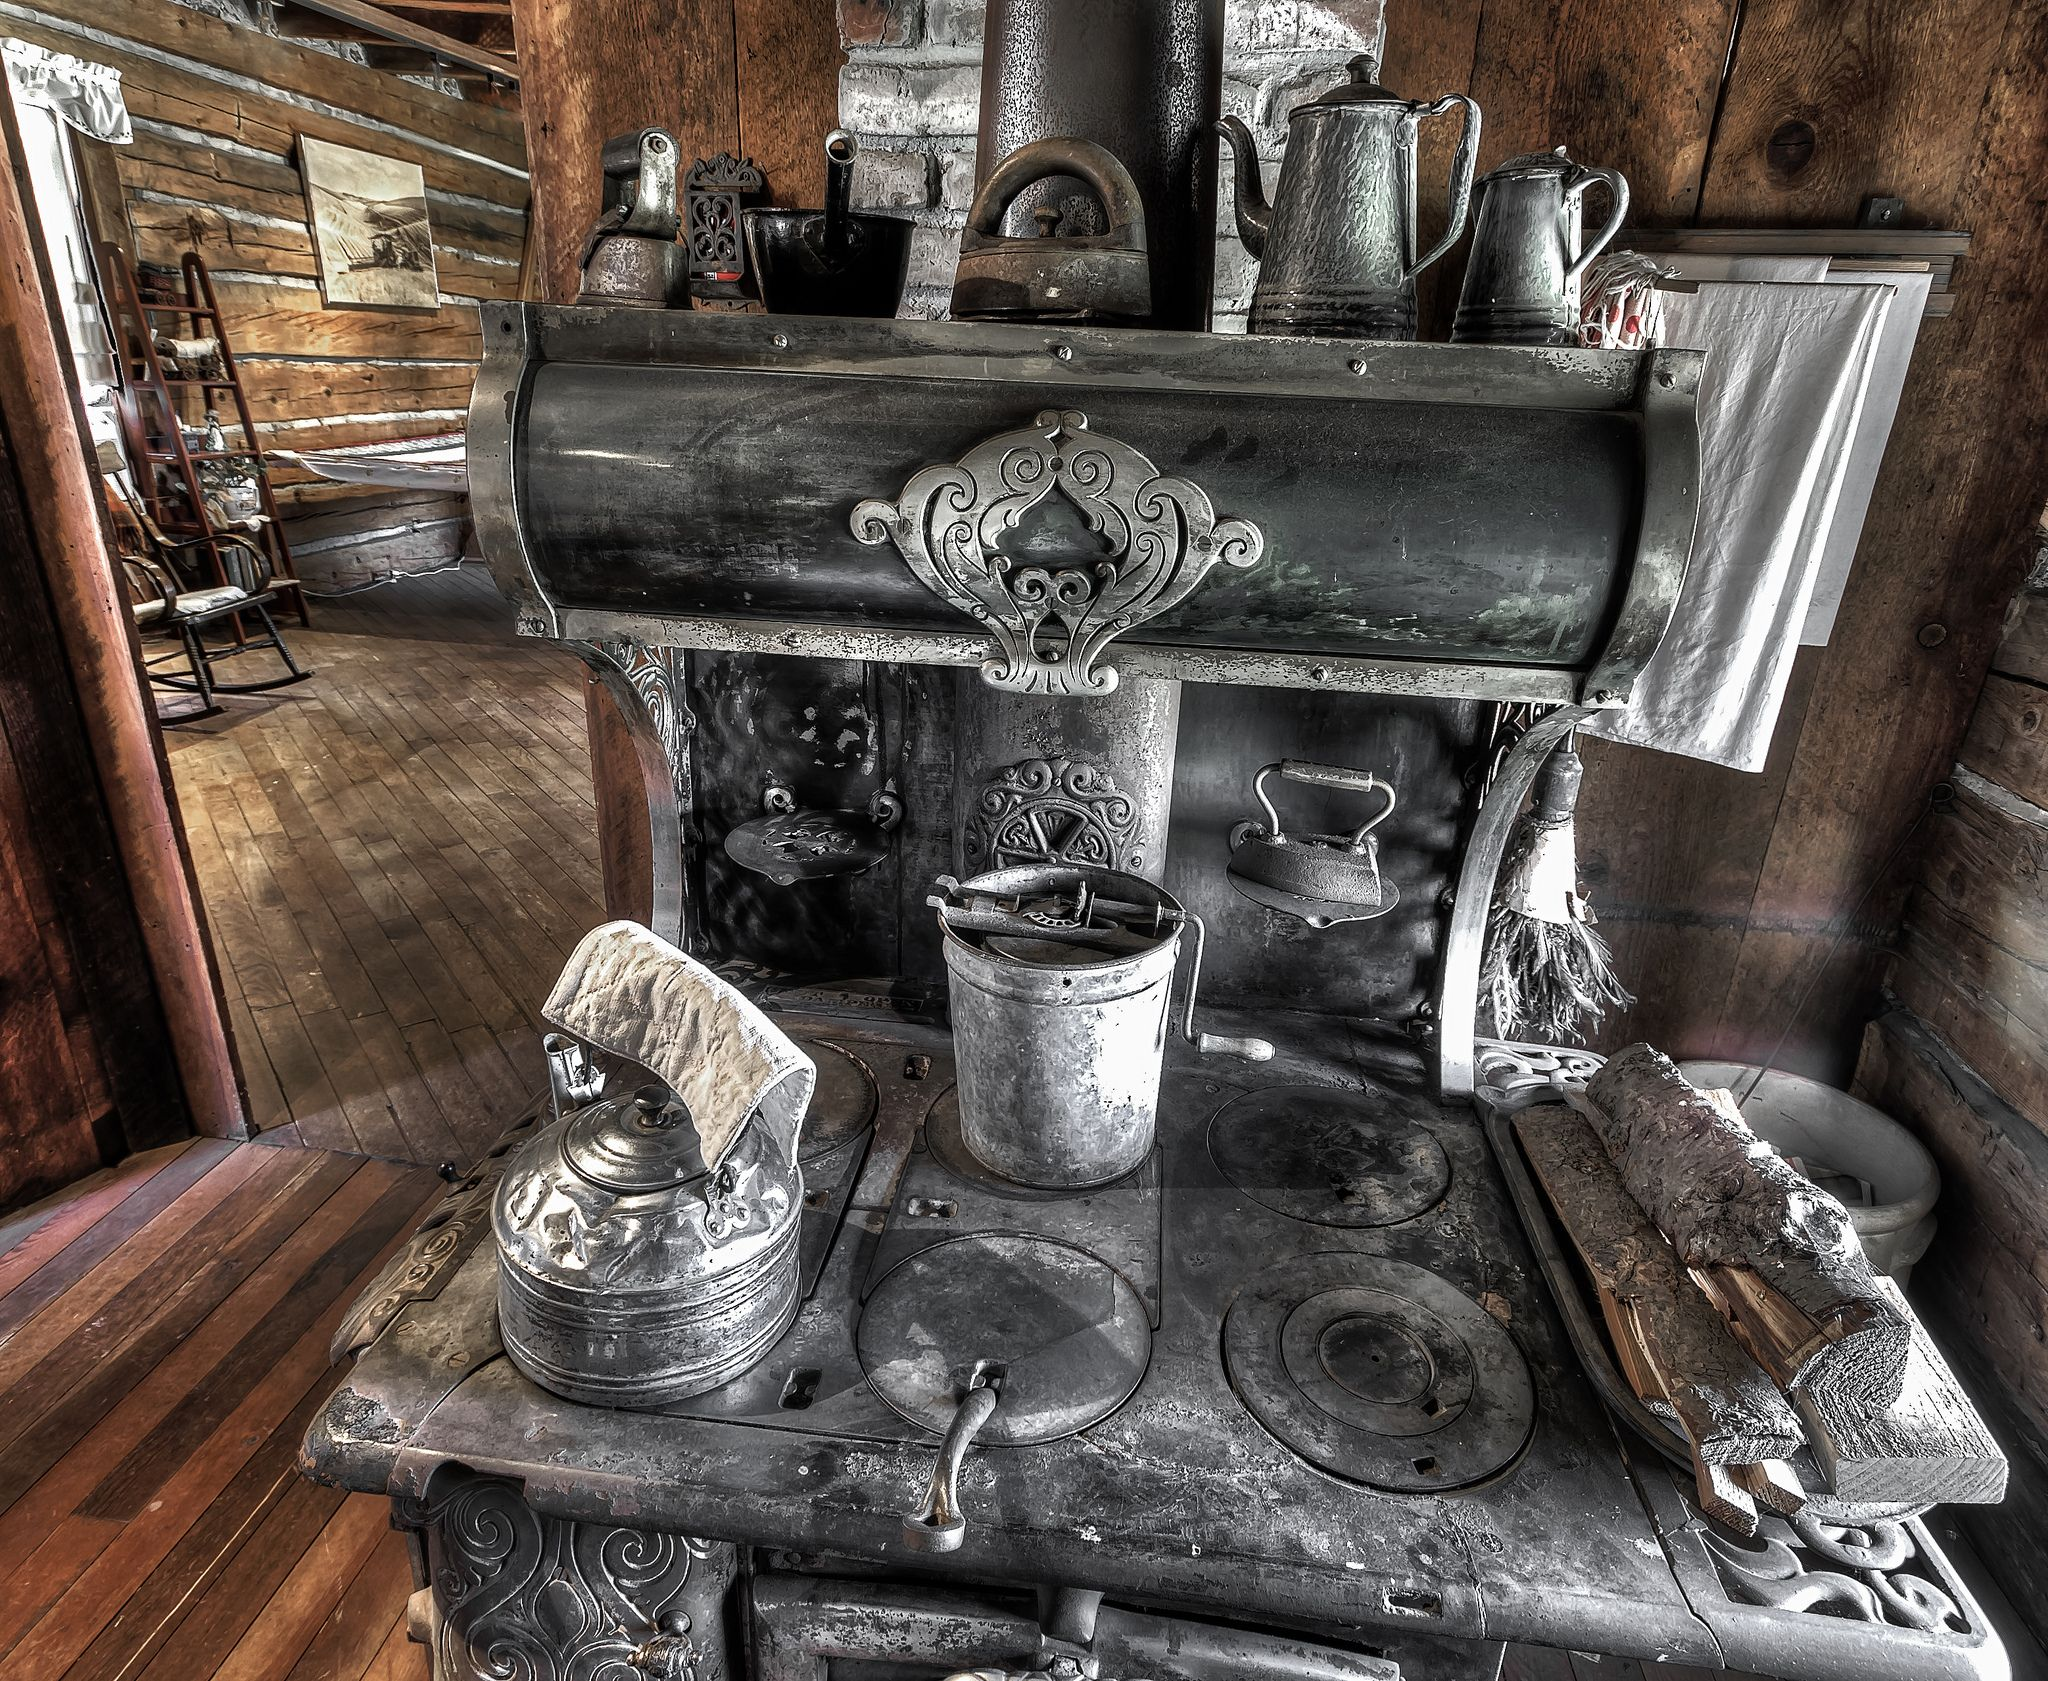 https://flic.kr/p/cTKxvy   Multi-purpose wood burning stove.   Heart of the kitchen in the Schreiber Log Cabin at the Dufur Historical Society Living History Museum on Main Street in Dufur, Oregon.